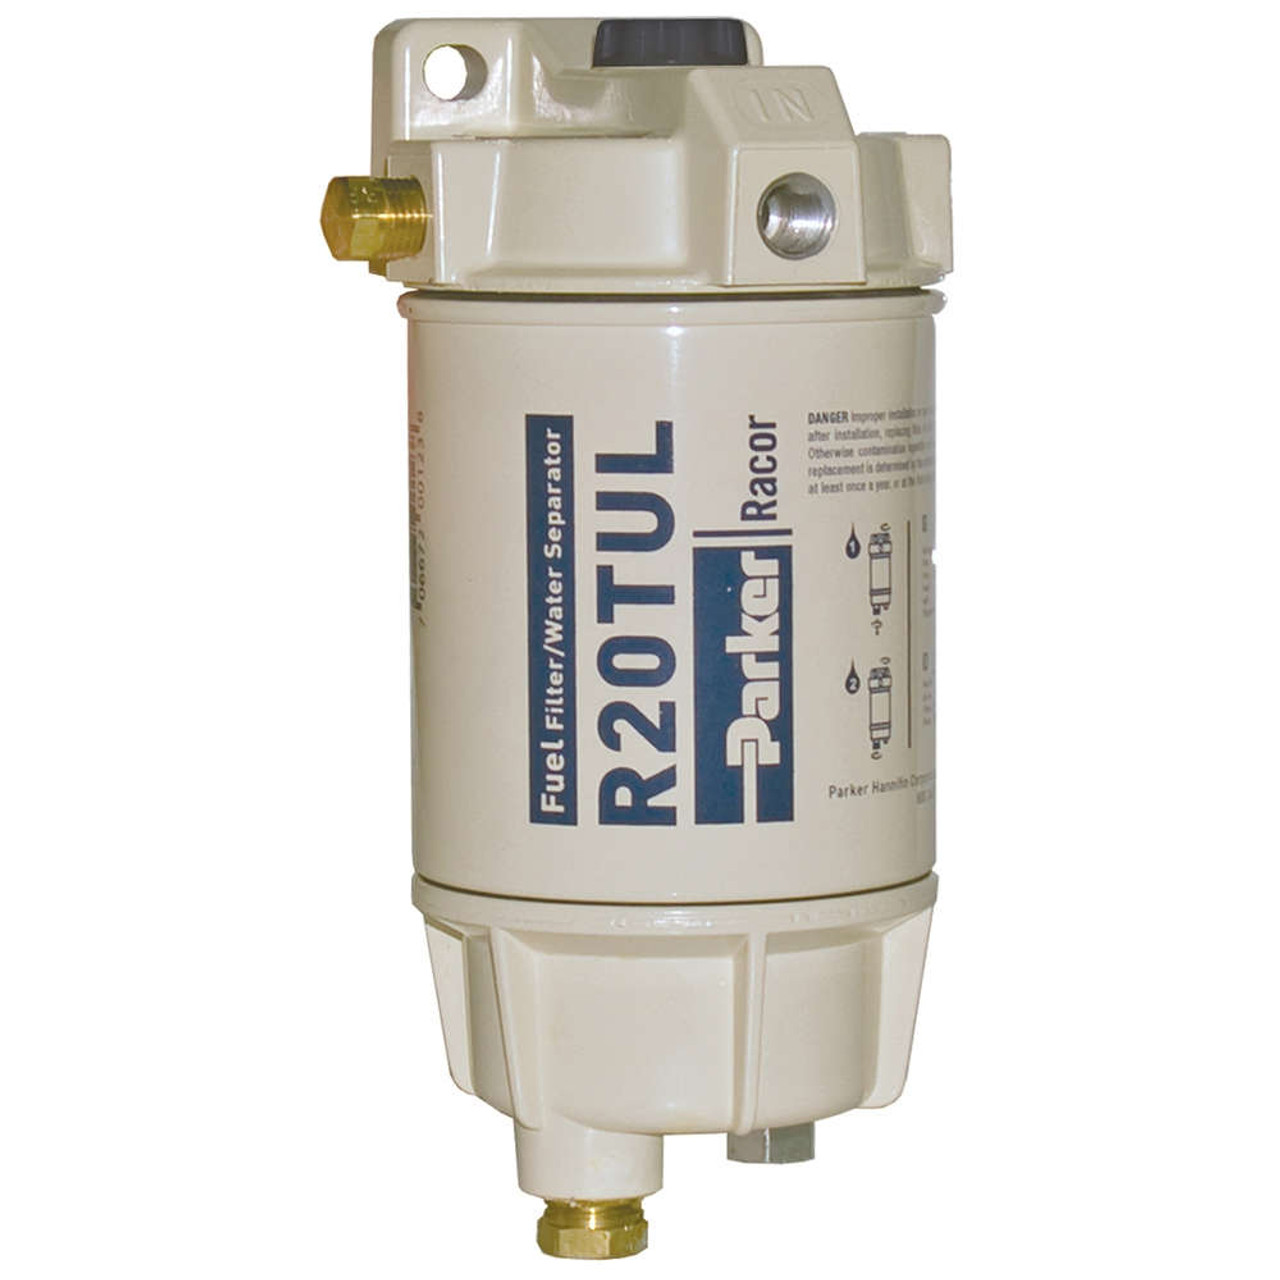 small resolution of racor 1 4 in 30 gph aquabloc marine spin on type diesel fuel filter water separator assembly 6 qty john m ellsworth co inc